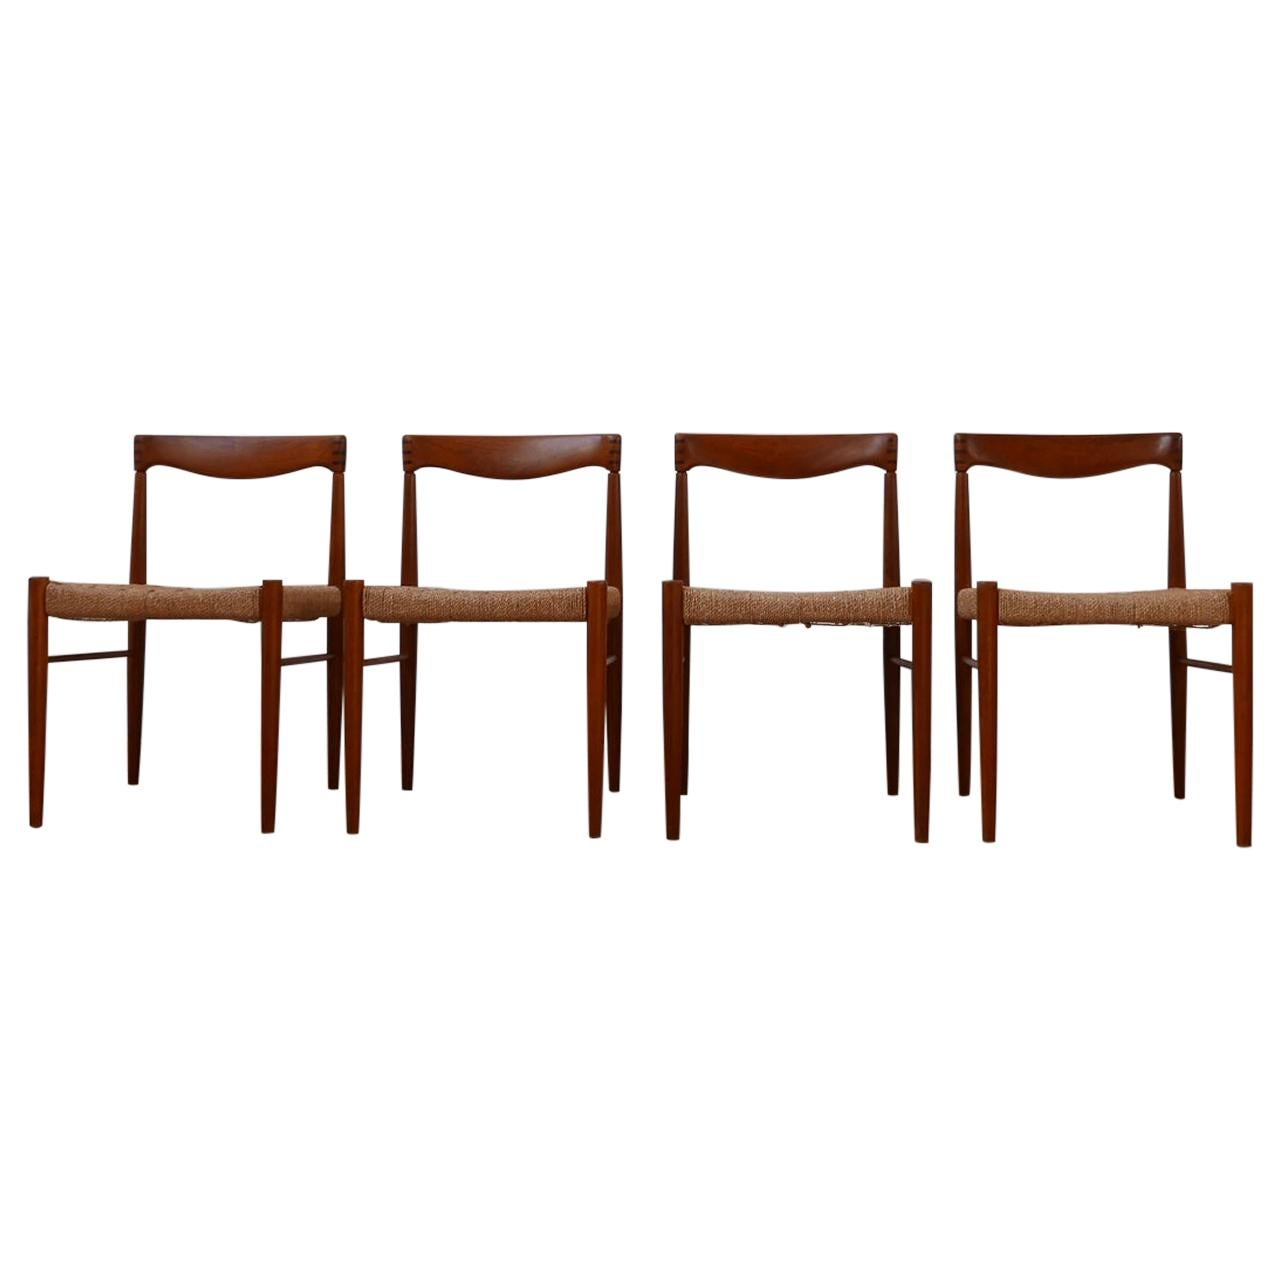 Set of Four Danish Mid-Century Dining Chairs by W.H. Klein for Bramin